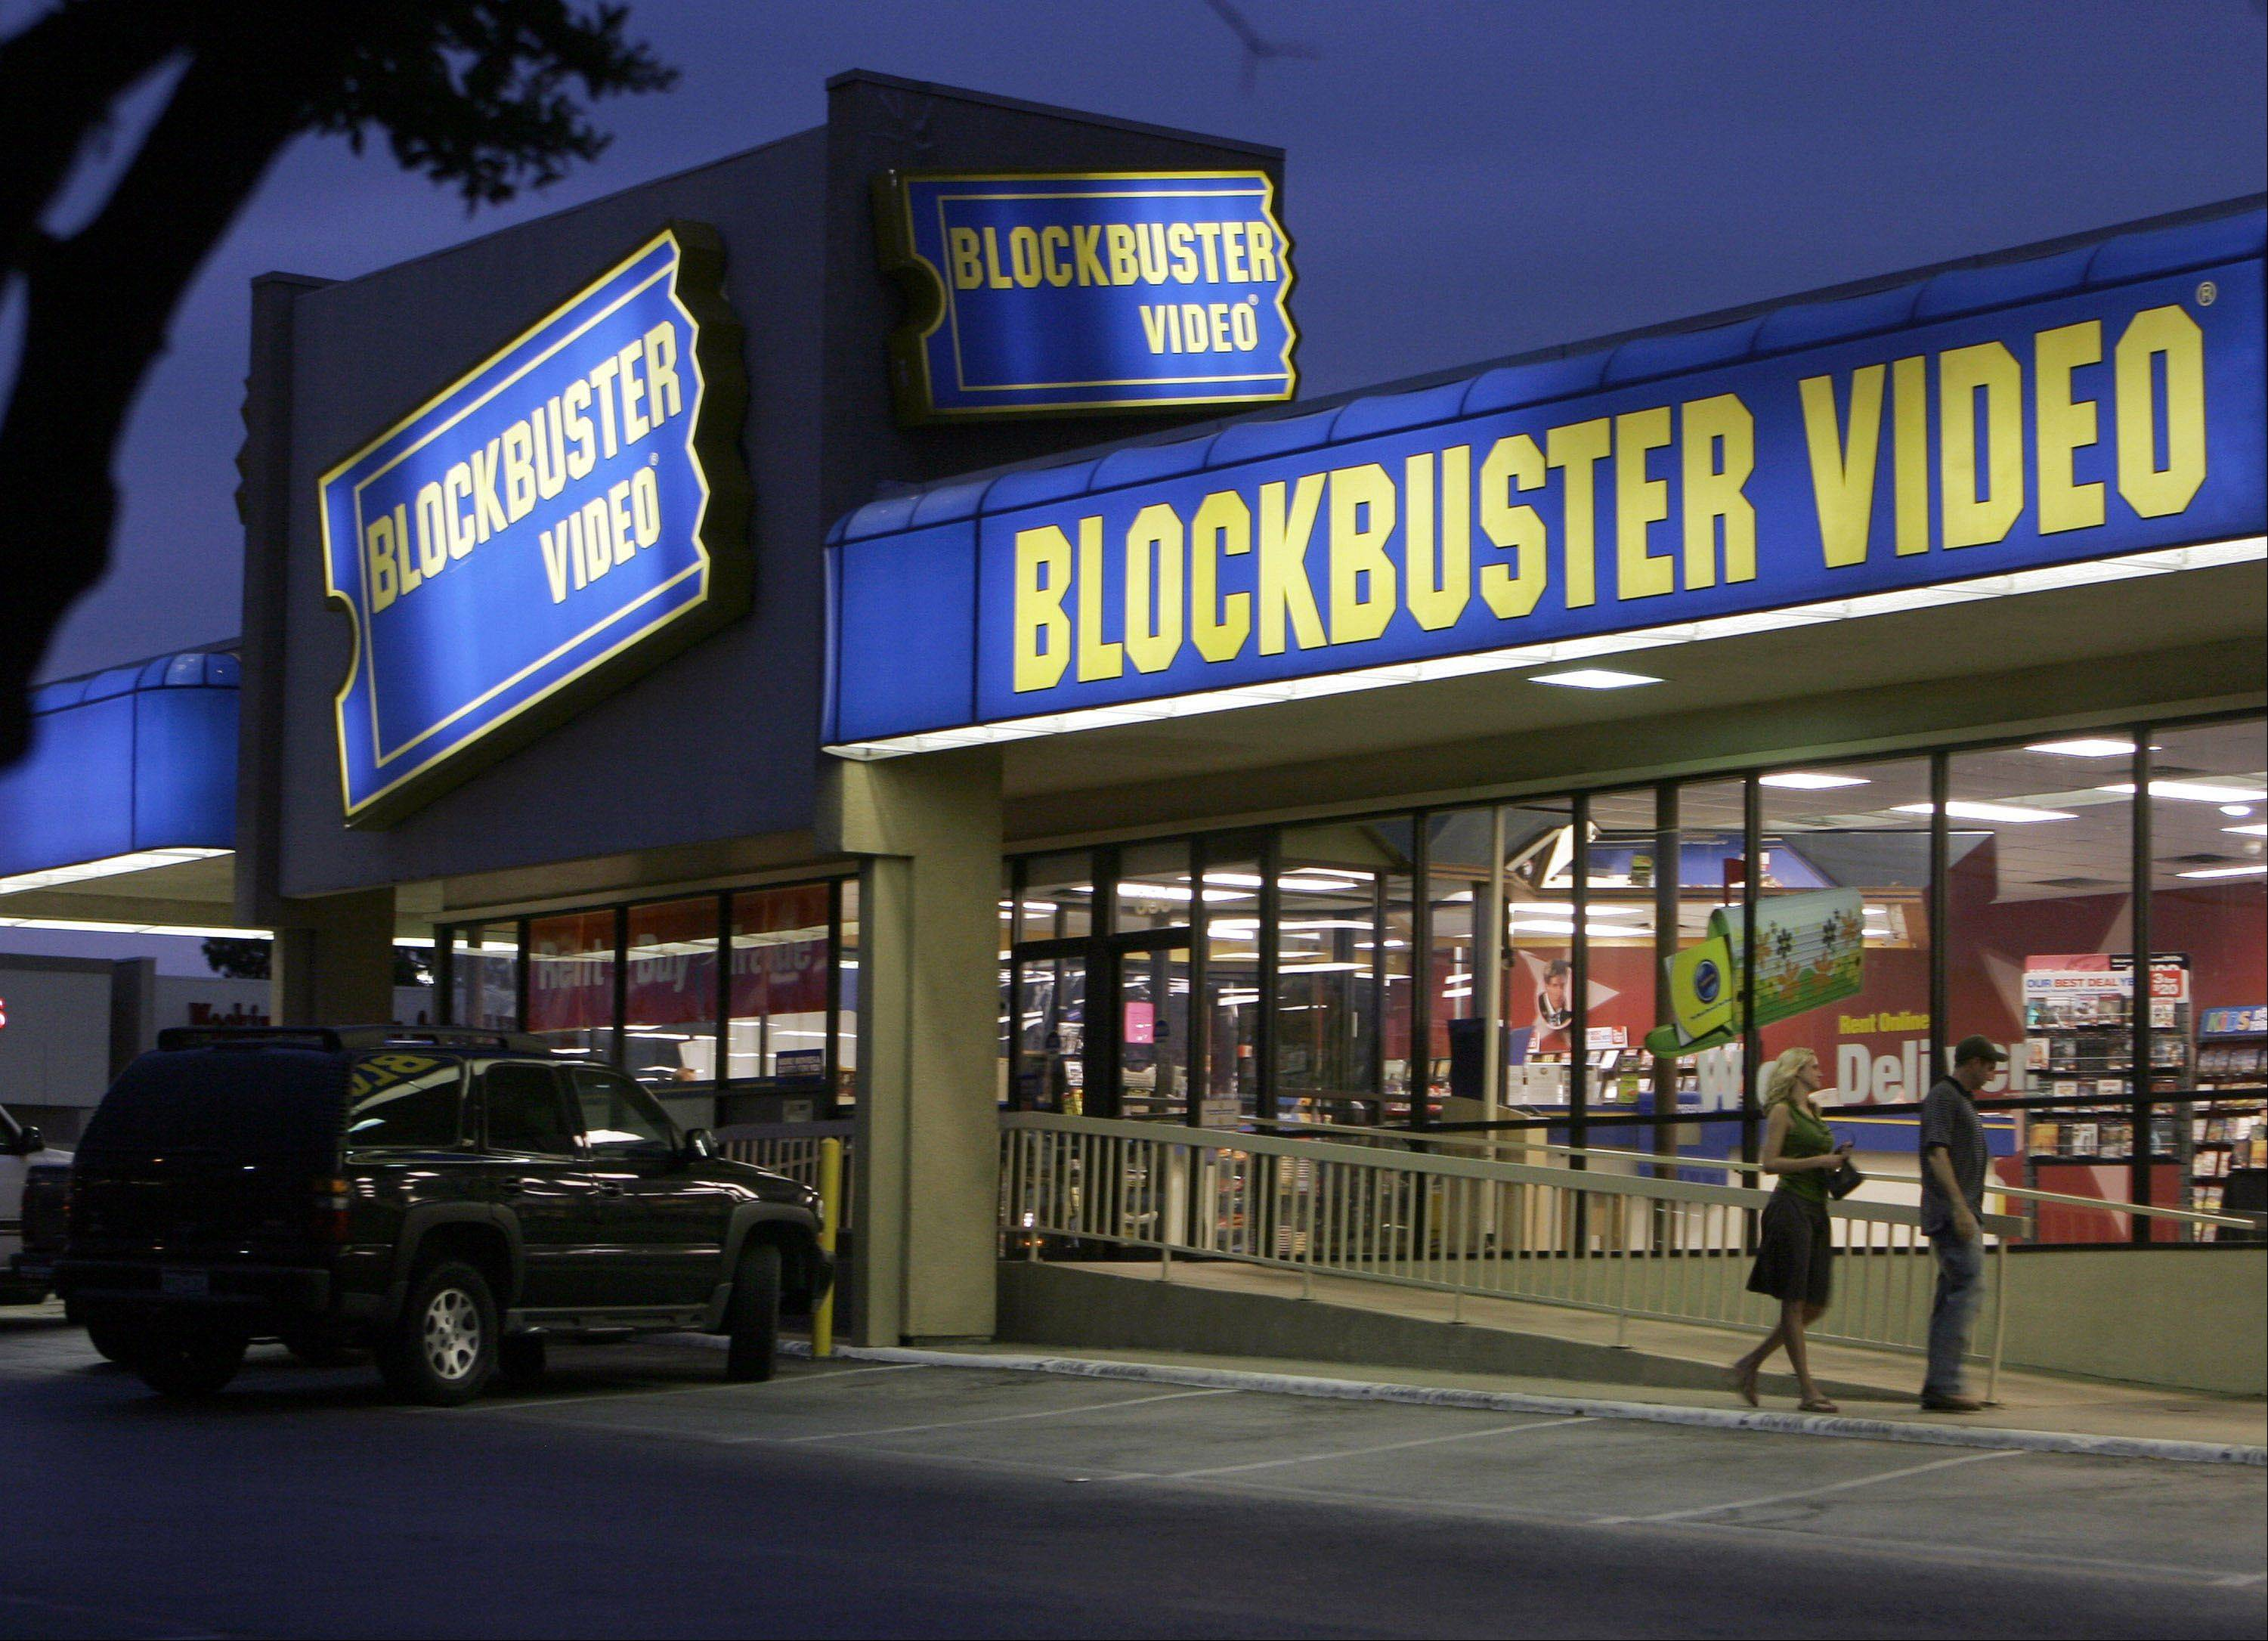 Dish Network Corp. says it plans to close about 300 Blockbuster stores across the country, losing about 3,000 employees.